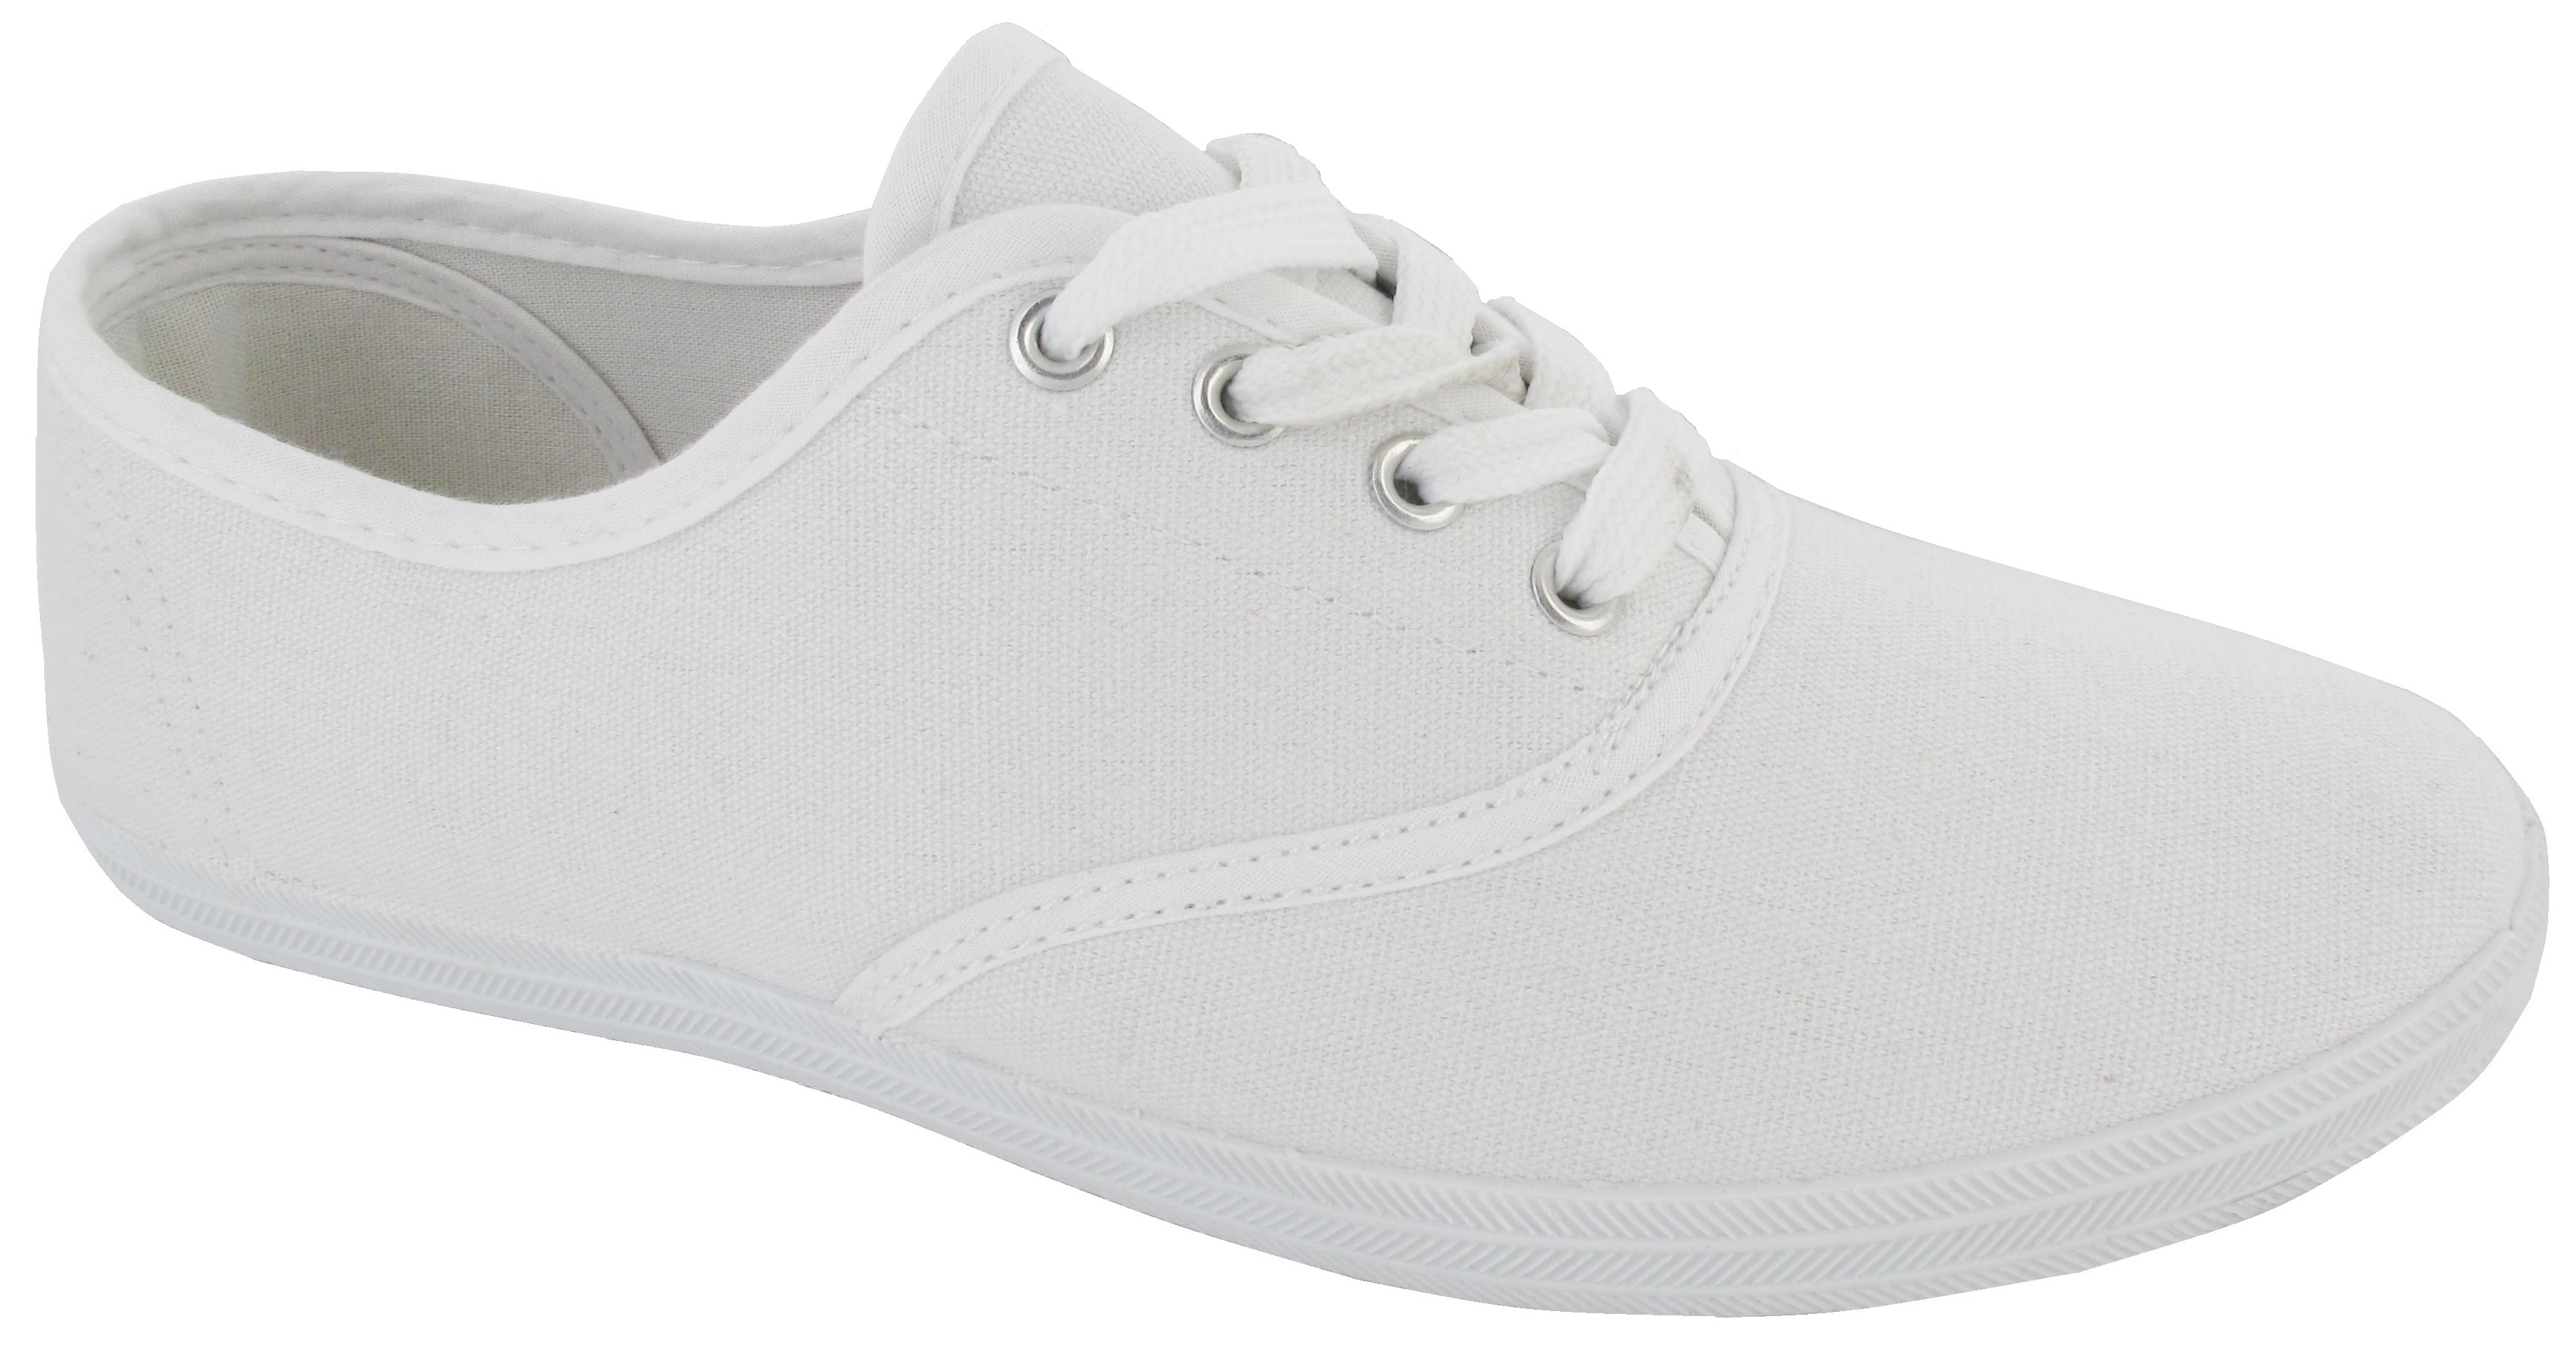 Find great deals on eBay for womens plimsolls. Shop with confidence.